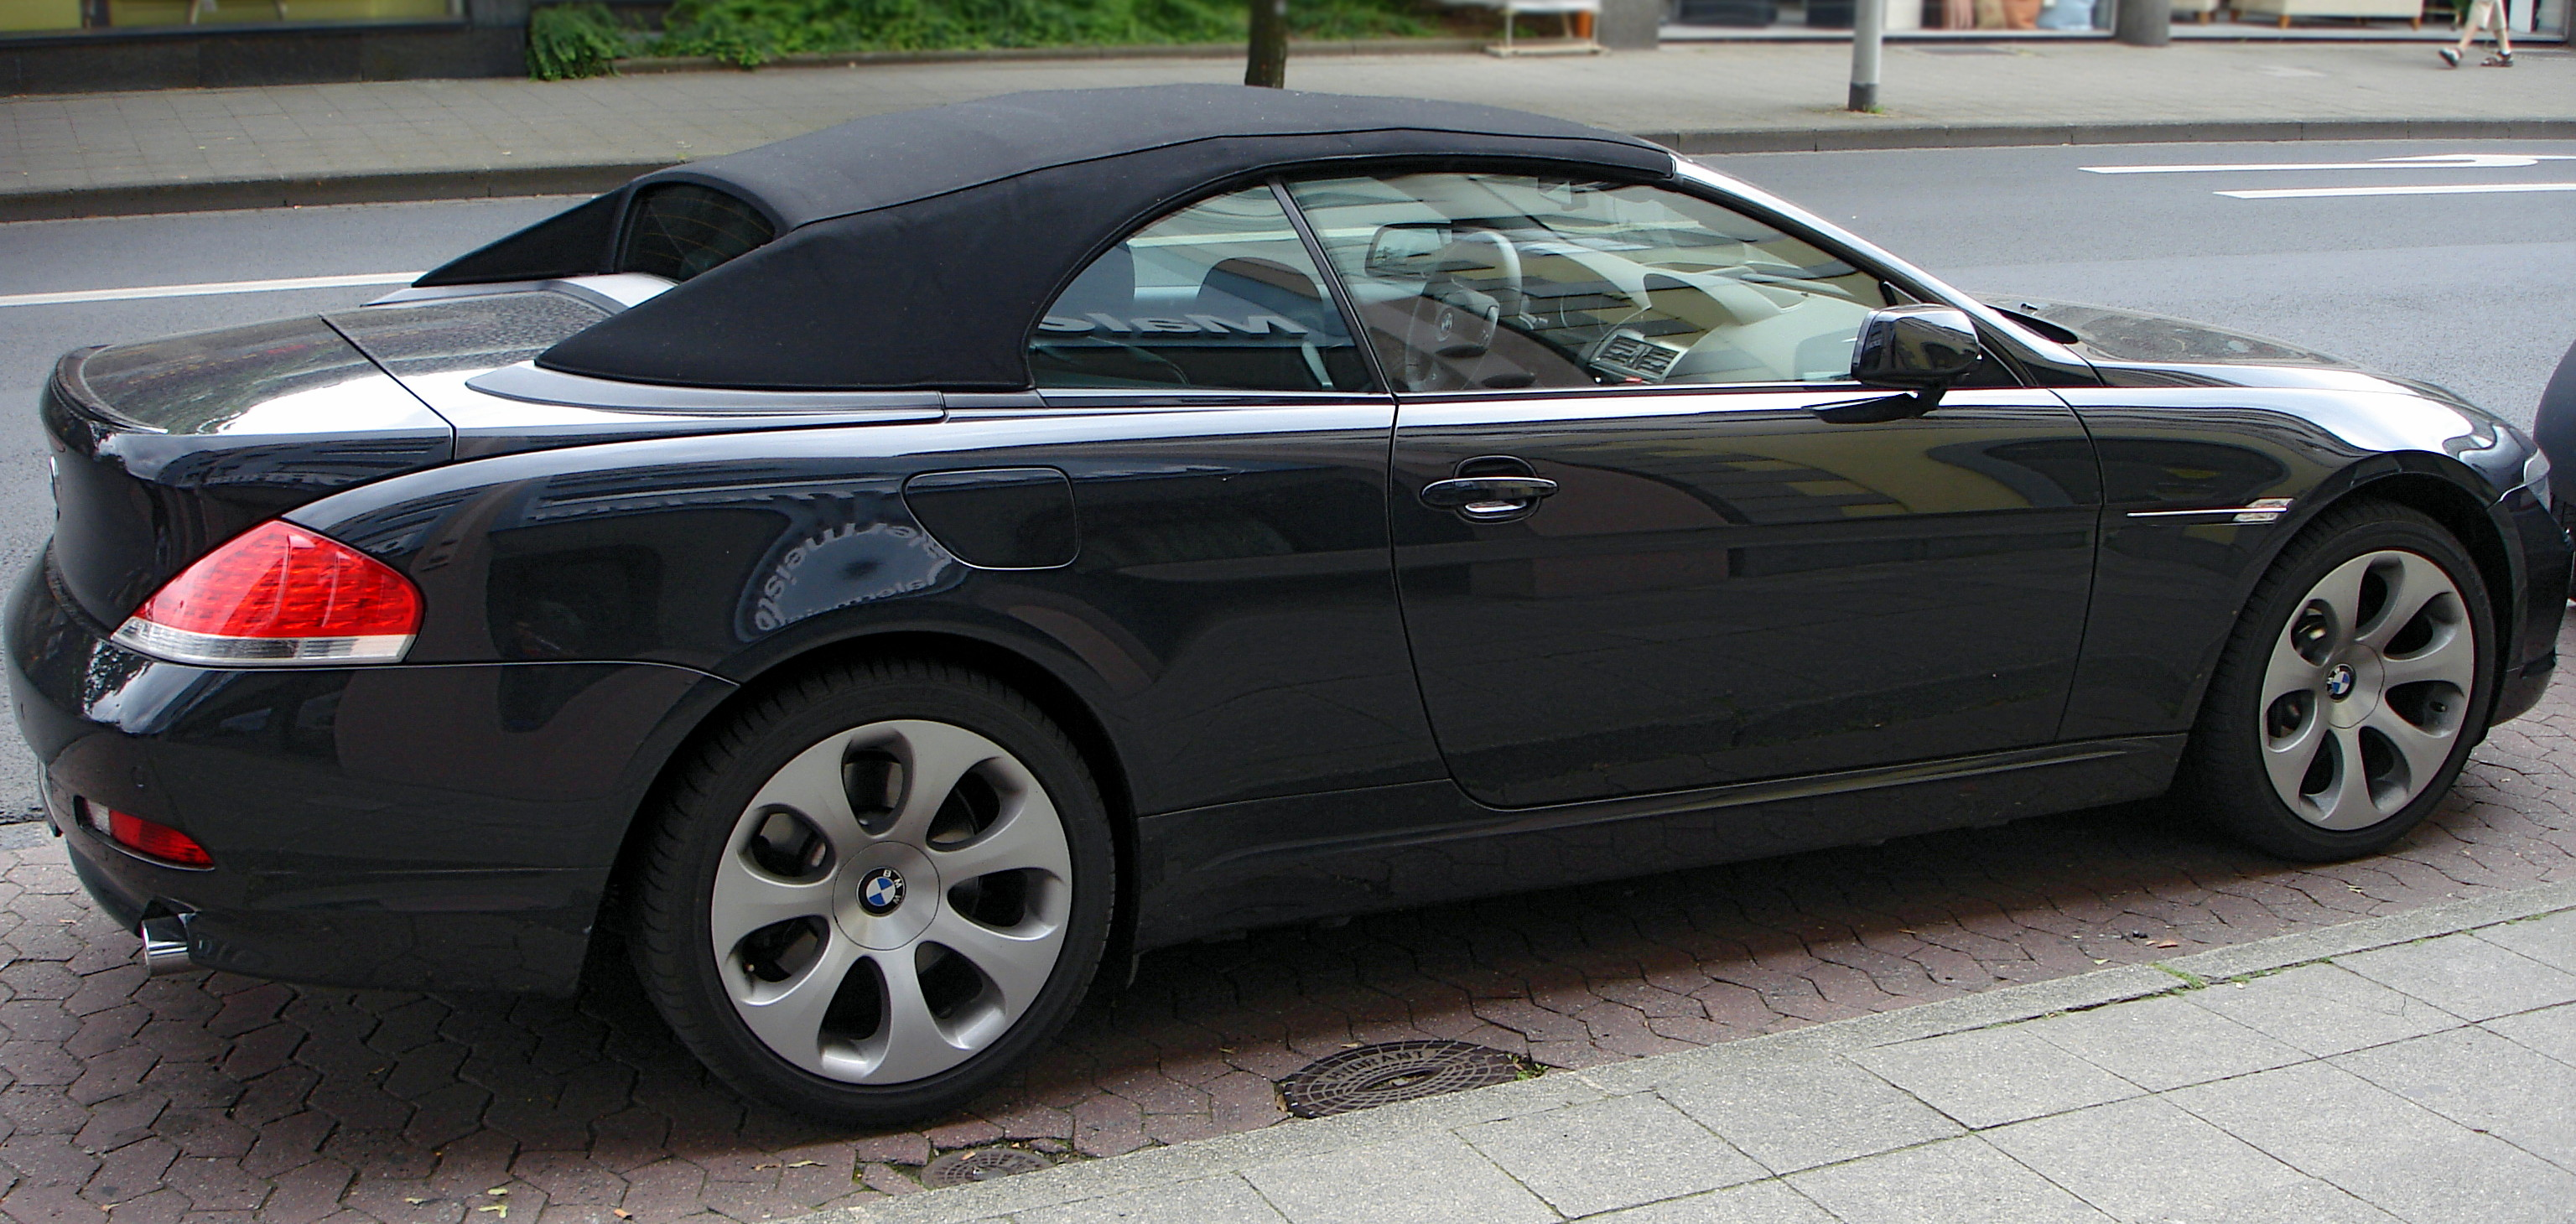 File:BMW 645 E64 side.jpg